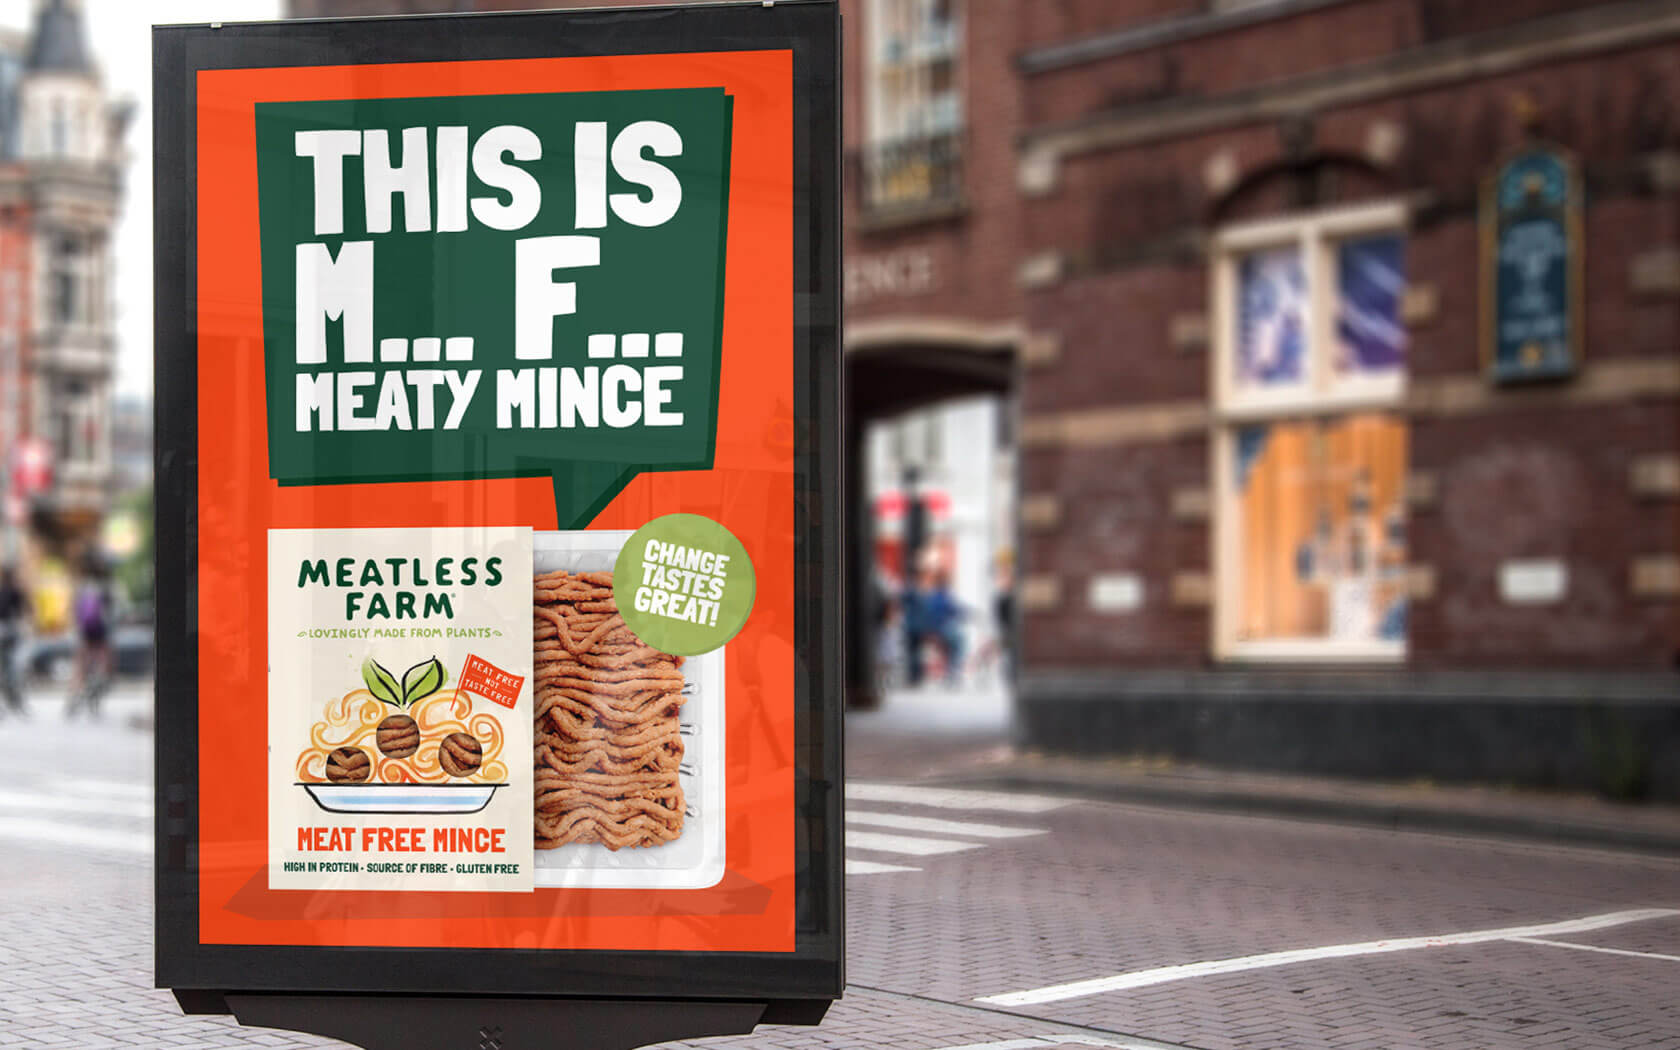 Meatless Farm M*** F*** campaign advert